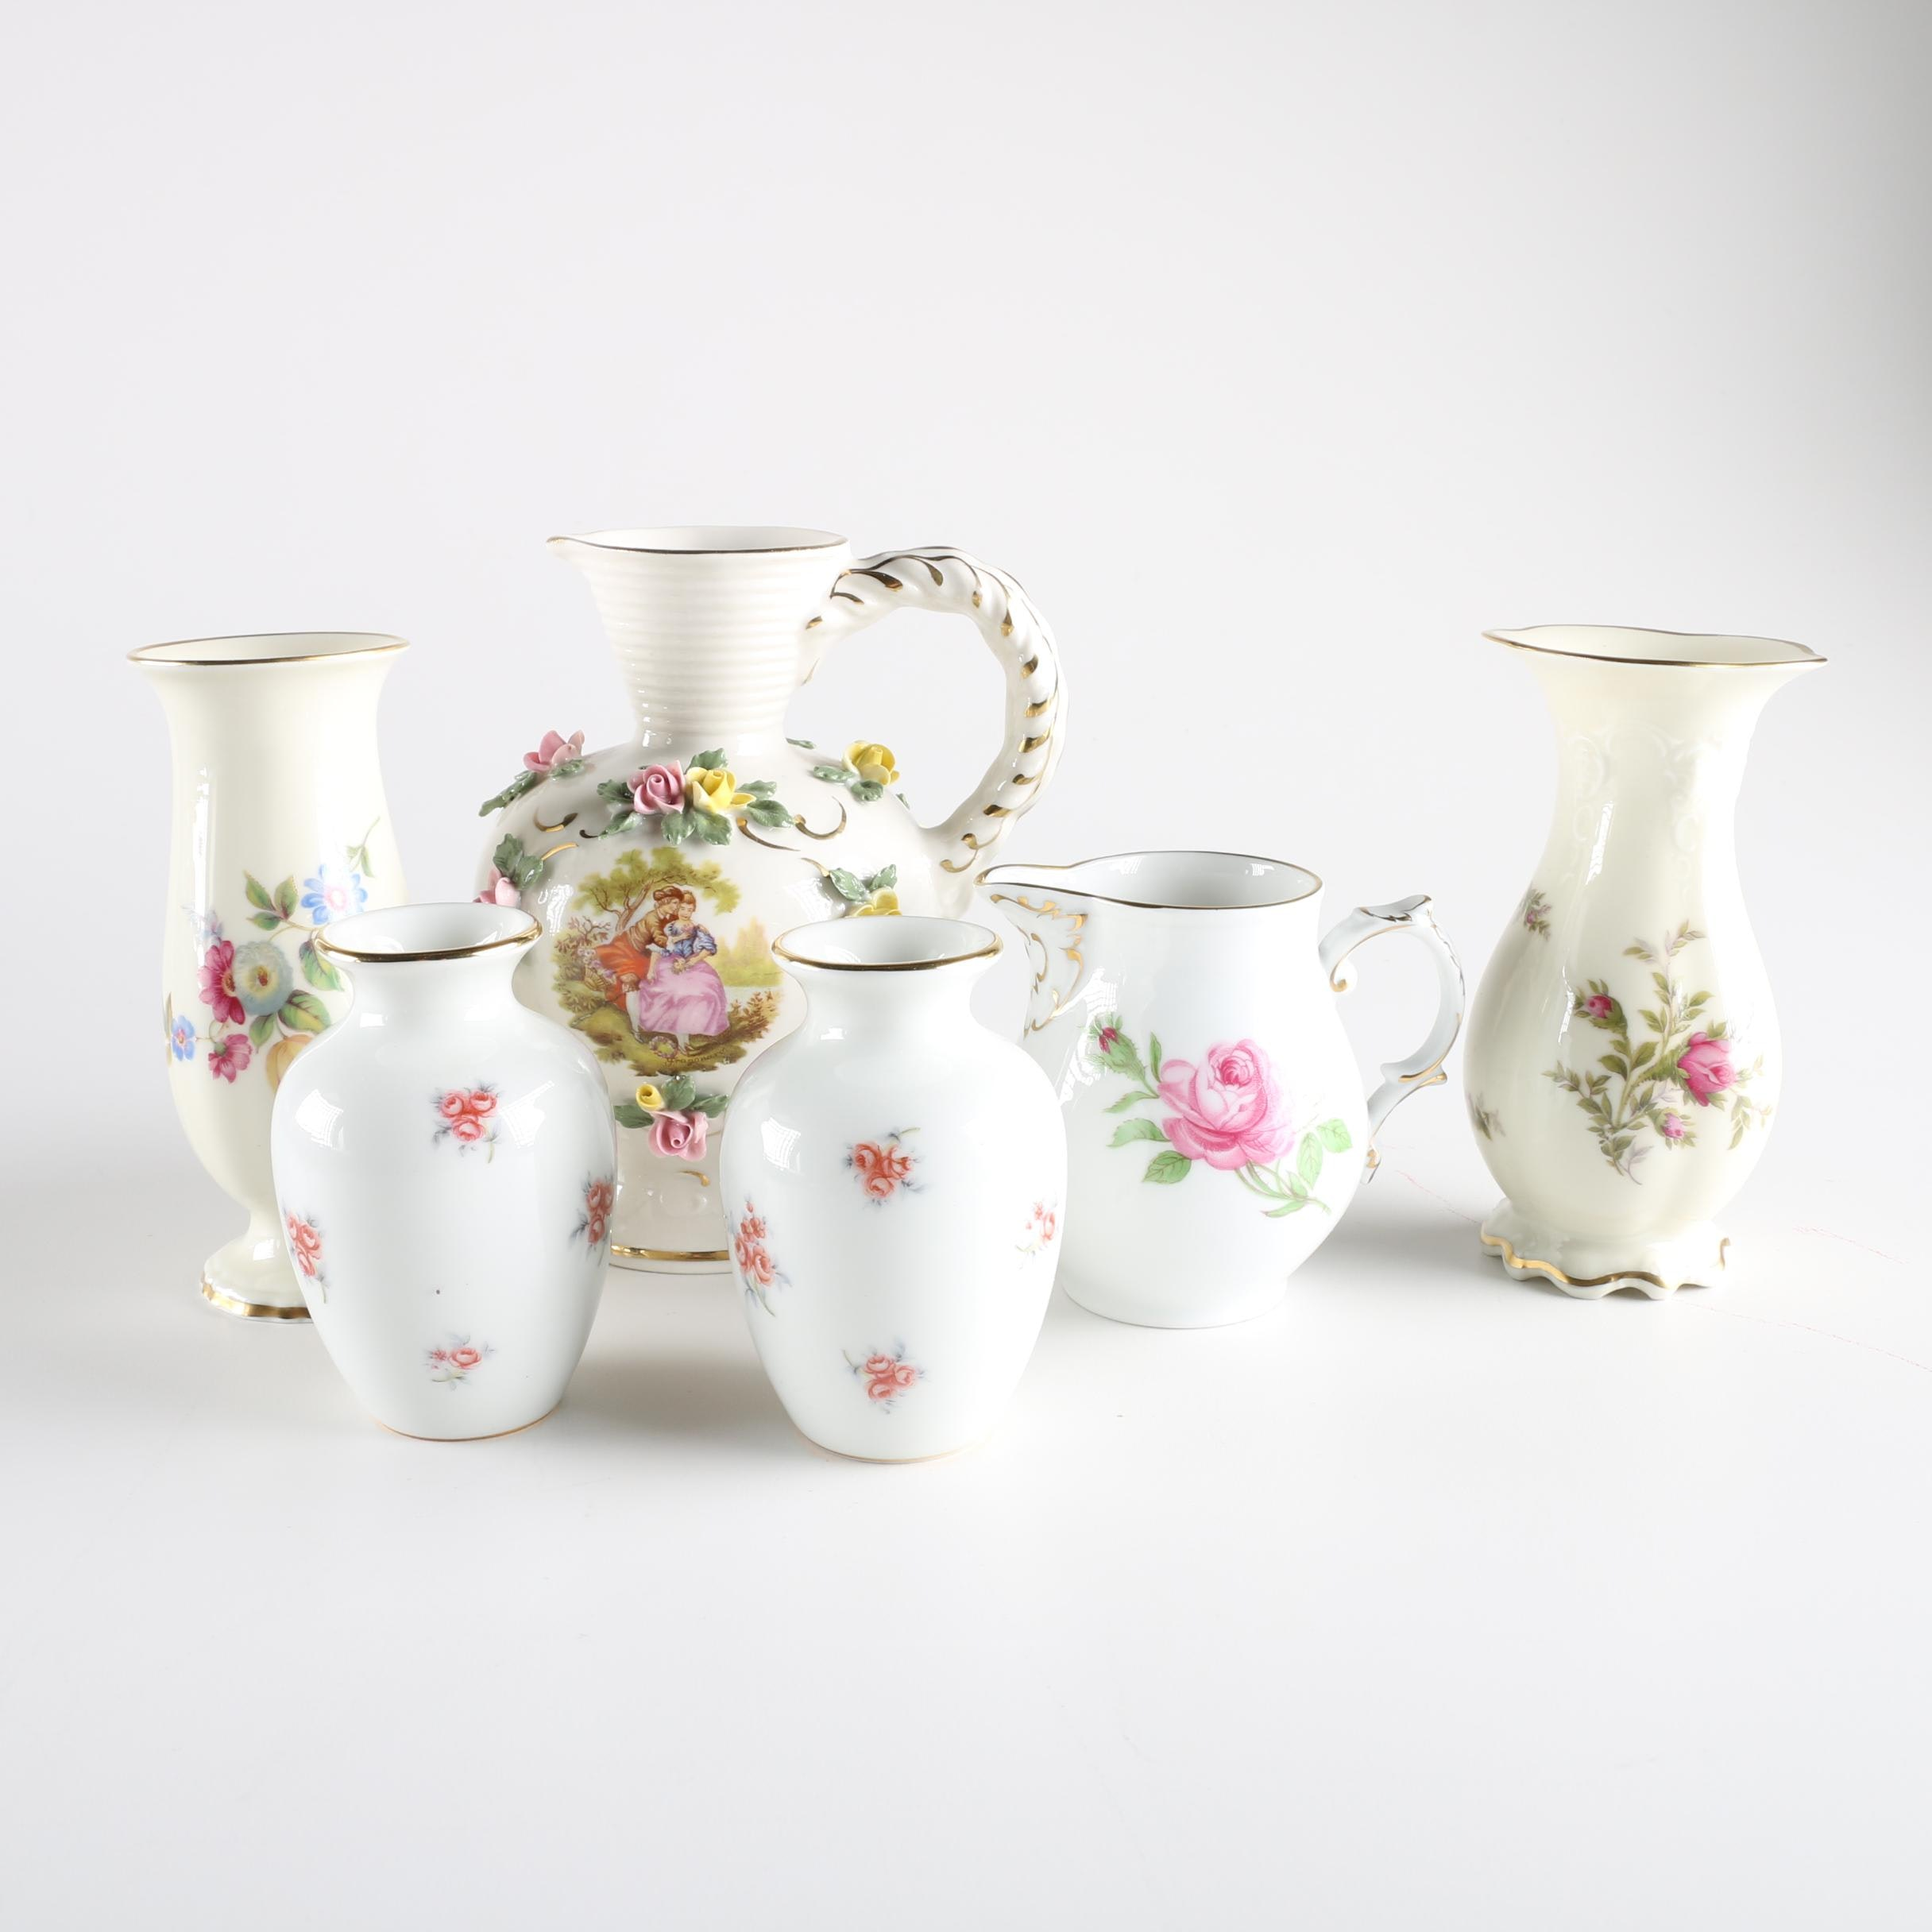 German China Bud Vases from Haviland, Dresden and Rosenthal